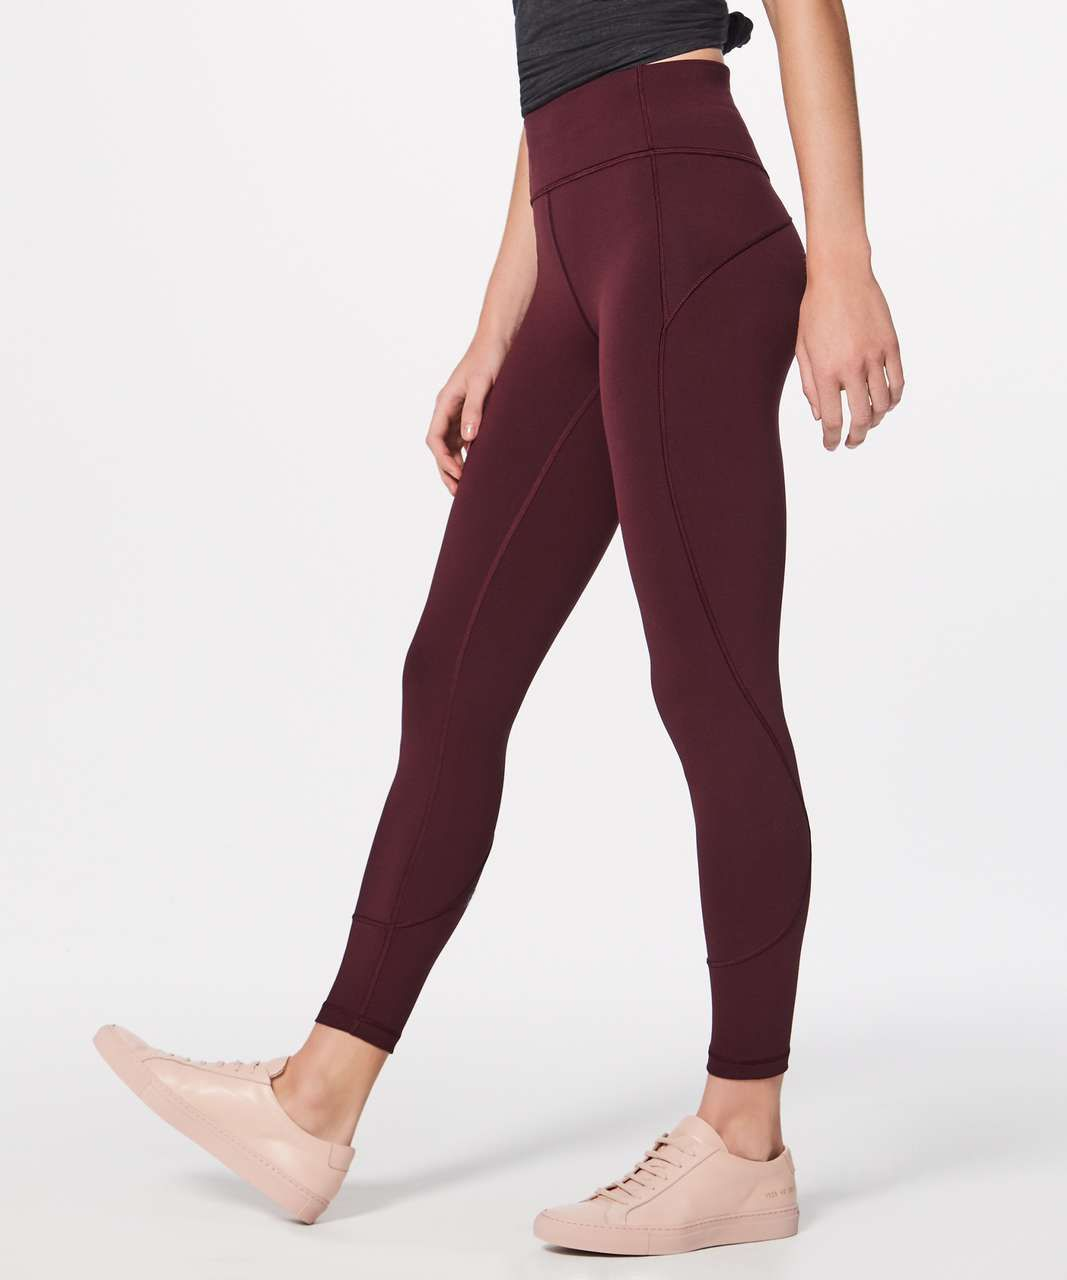 4f8cca730 Meet your new studio workout companion  a sleek tight that fits like a  second skin. Everlux™ fabric is four-way stretch